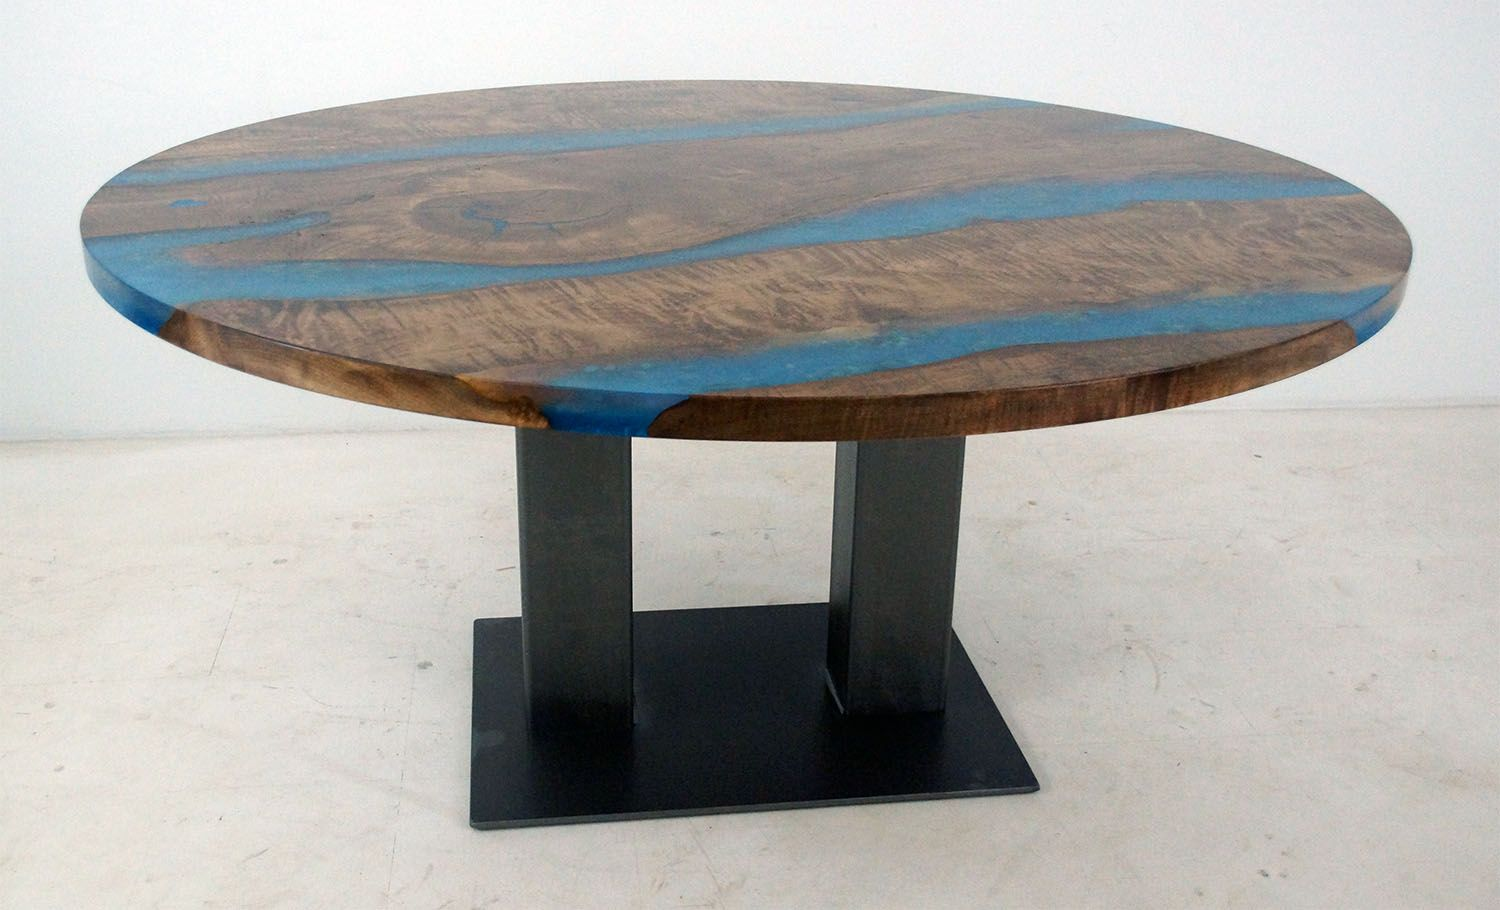 Stained Maple Round Table With Blue Resin And Stones Maple Wood Table Table Custom Table [ 910 x 1500 Pixel ]